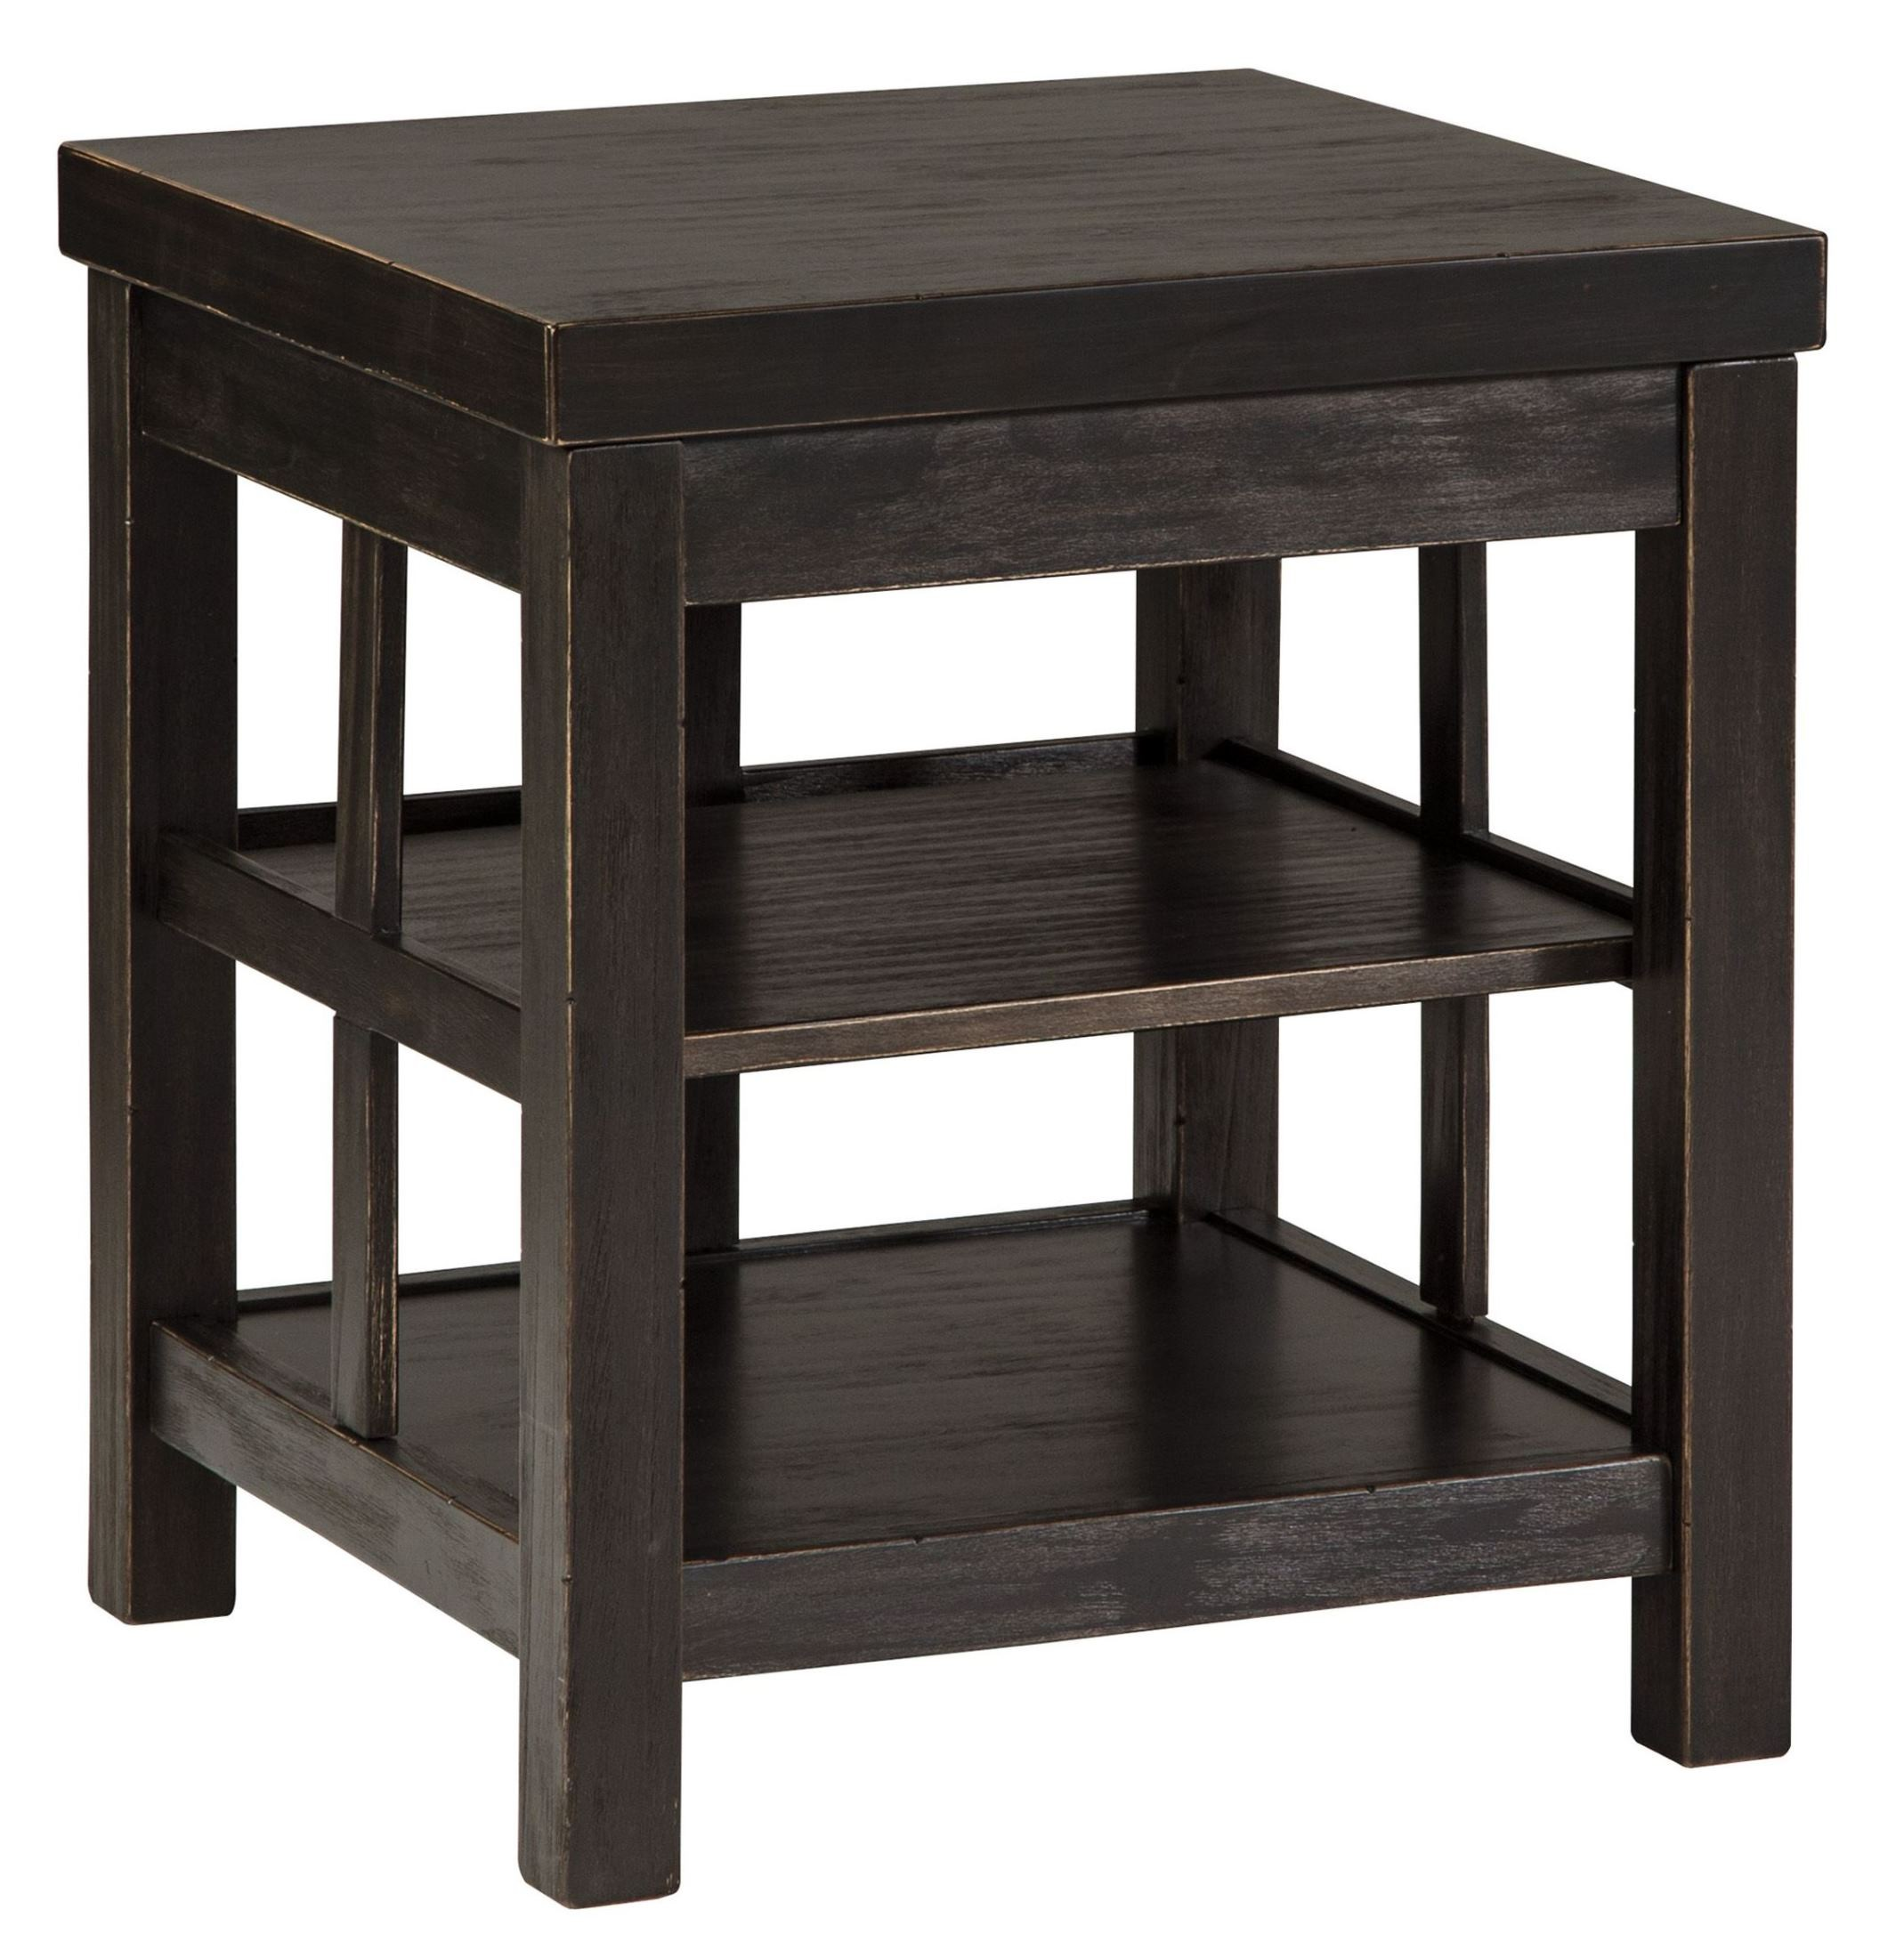 Gavelston Vintage Rub Through Black Square End Table From